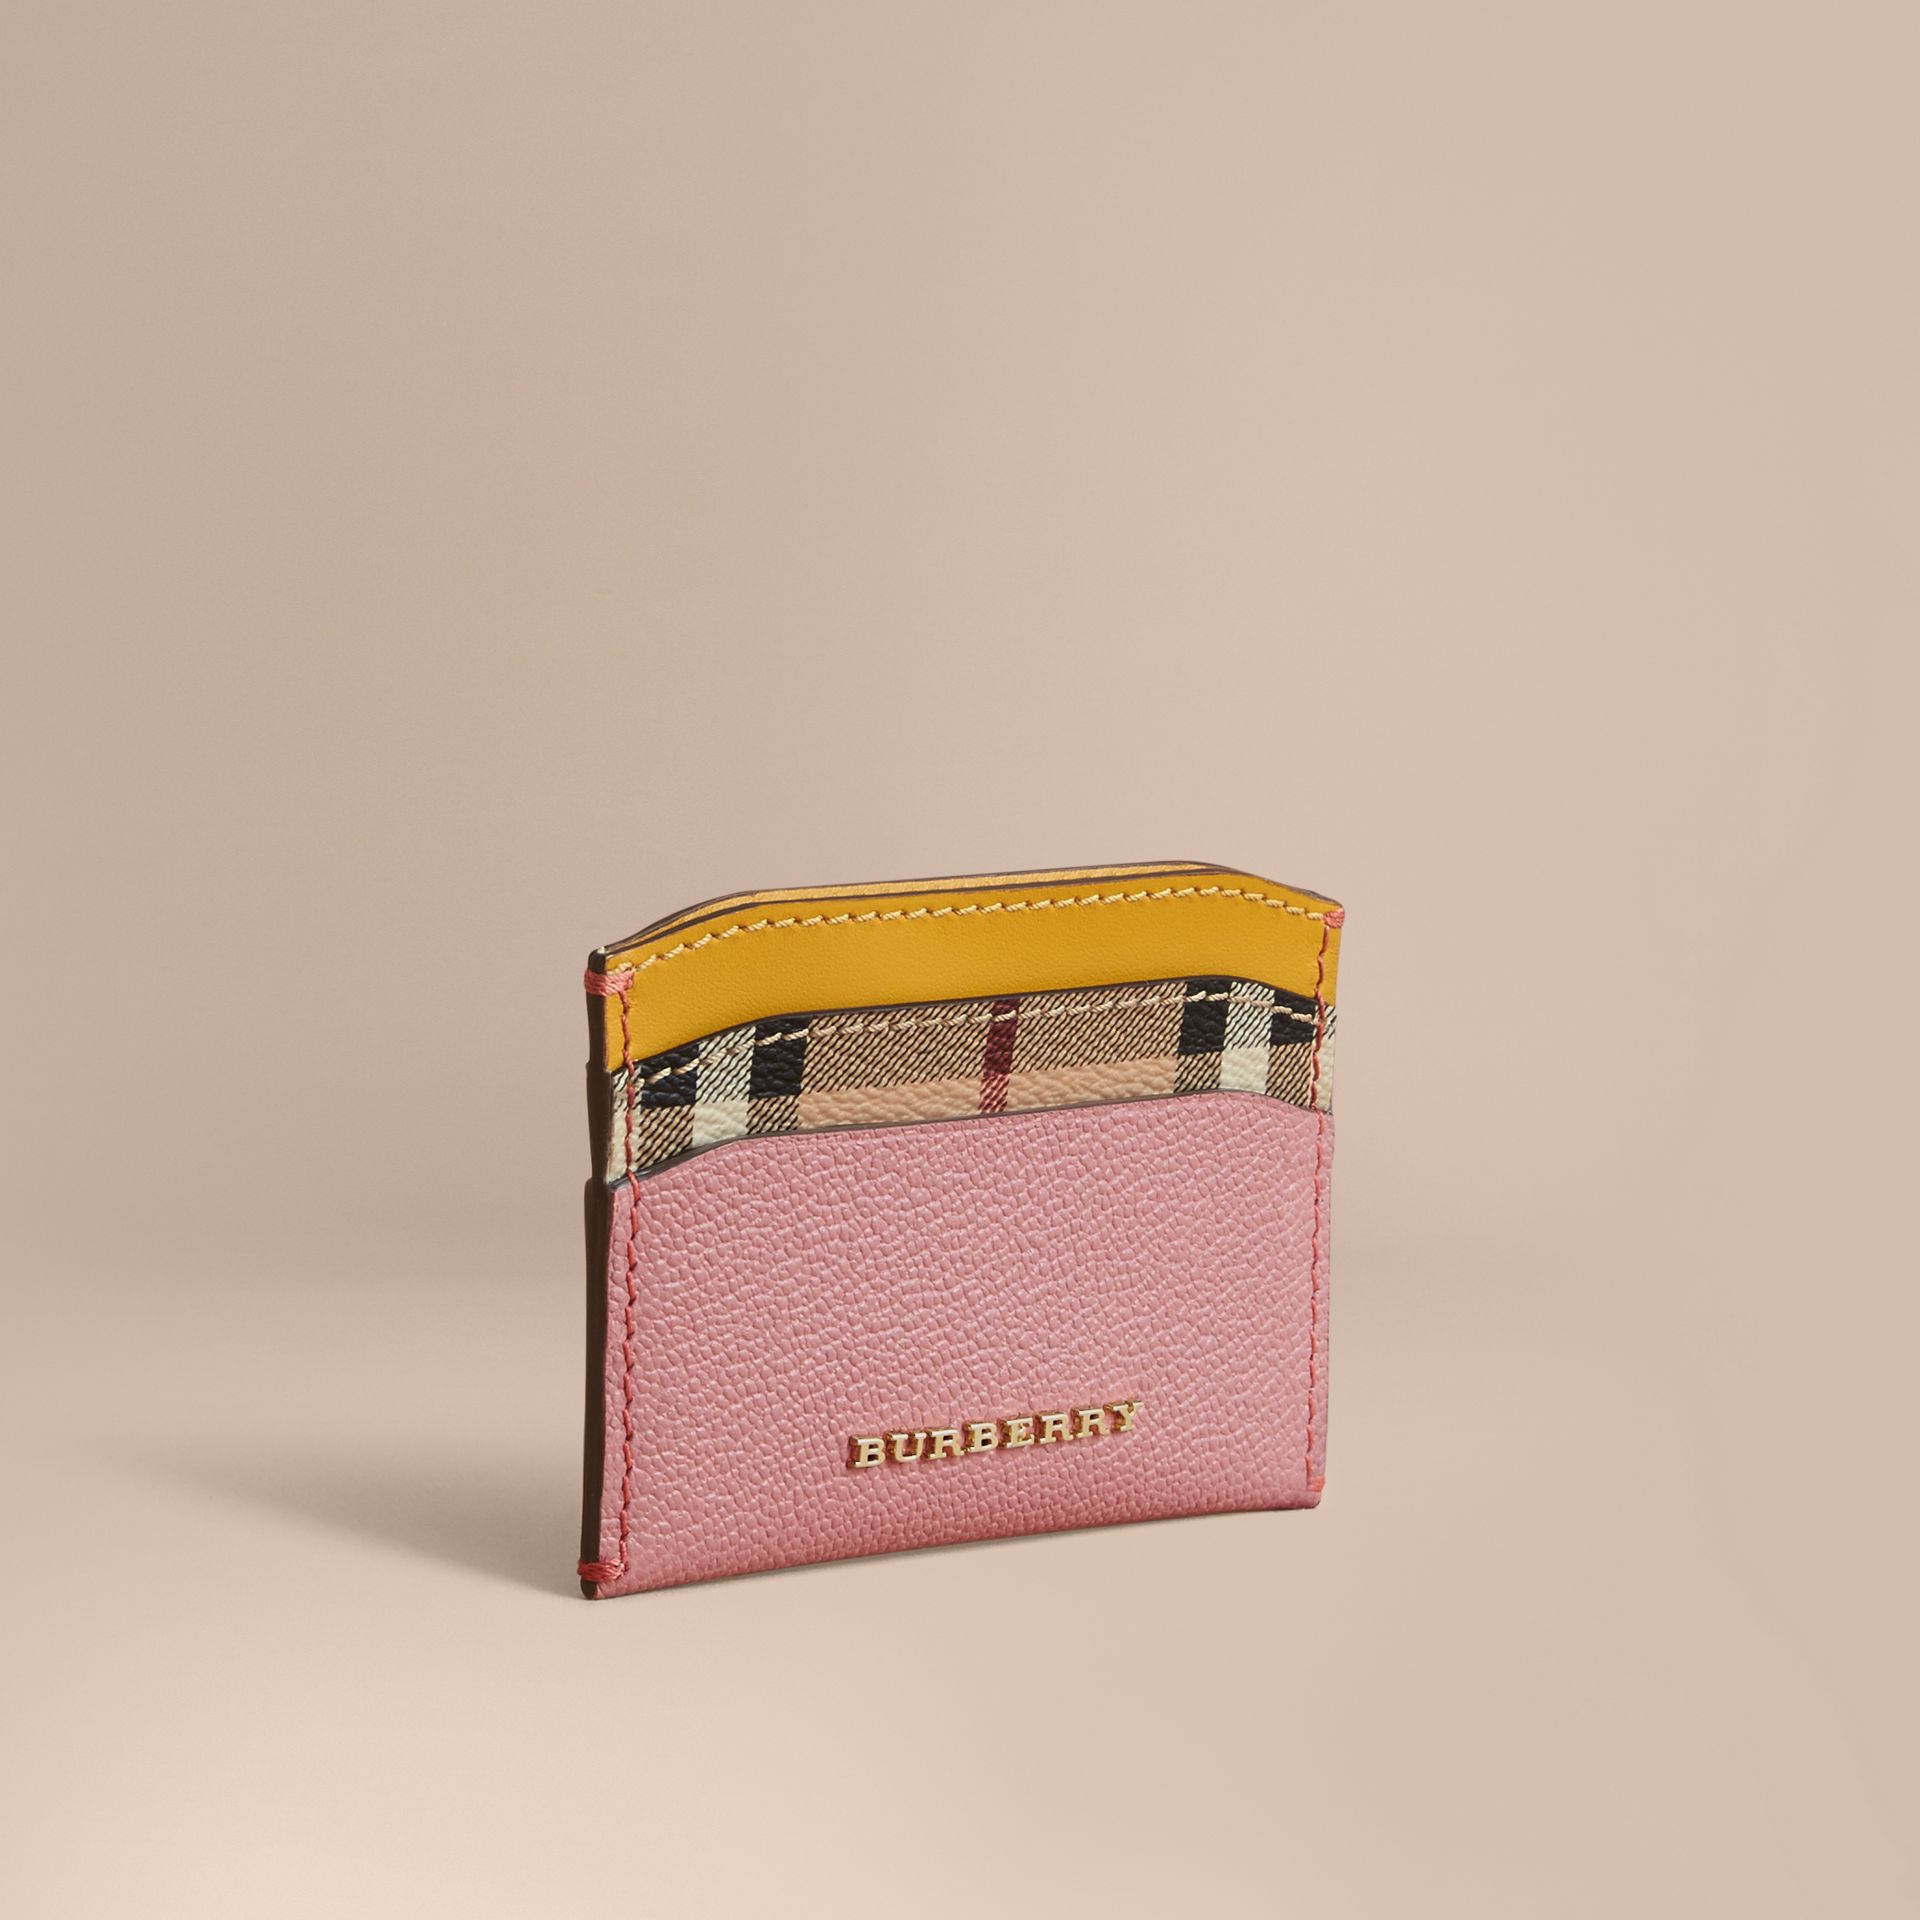 Colour Block Leather and Haymarket Check Card Case in Dusty Pink / Multi - Women | Burberry Australia - gallery image 1